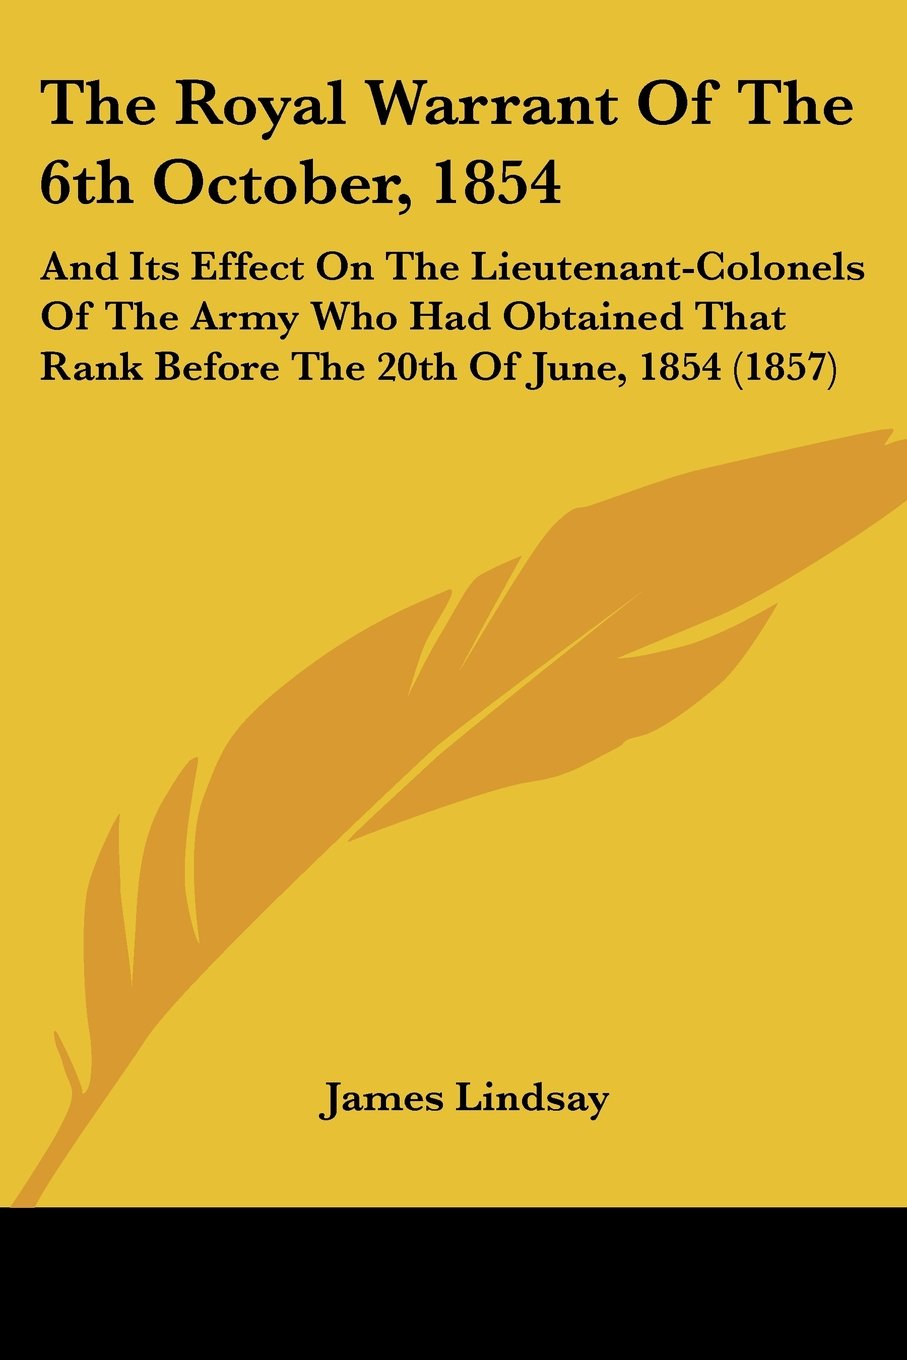 Read Online The Royal Warrant Of The 6th October, 1854: And Its Effect On The Lieutenant-Colonels Of The Army Who Had Obtained That Rank Before The 20th Of June, 1854 (1857) pdf epub